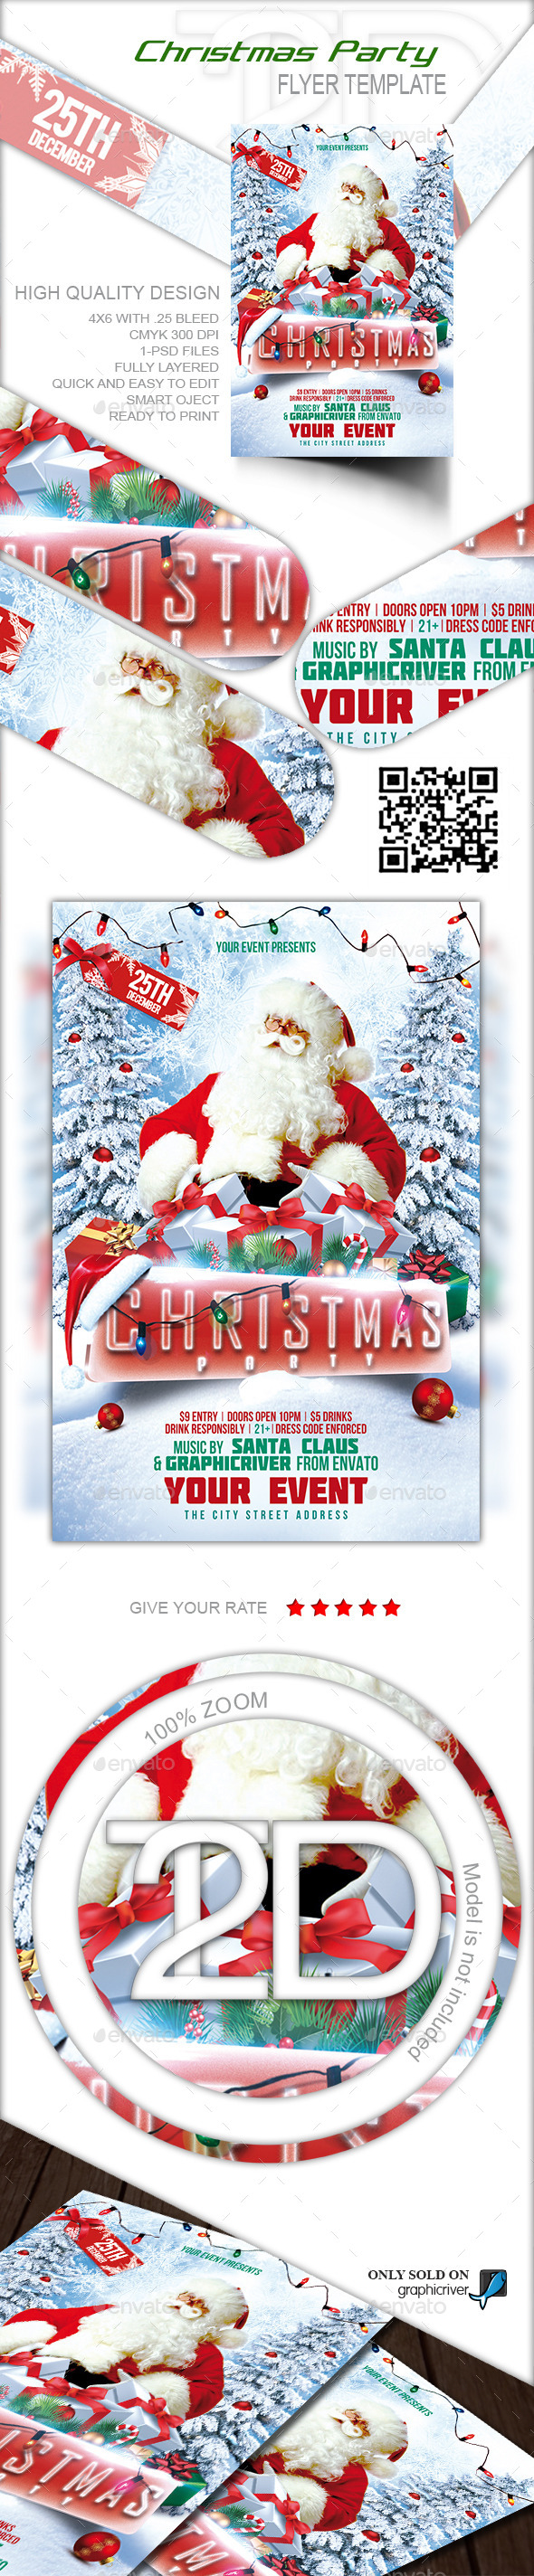 GraphicRiver Christmas Party Flyer 9495935